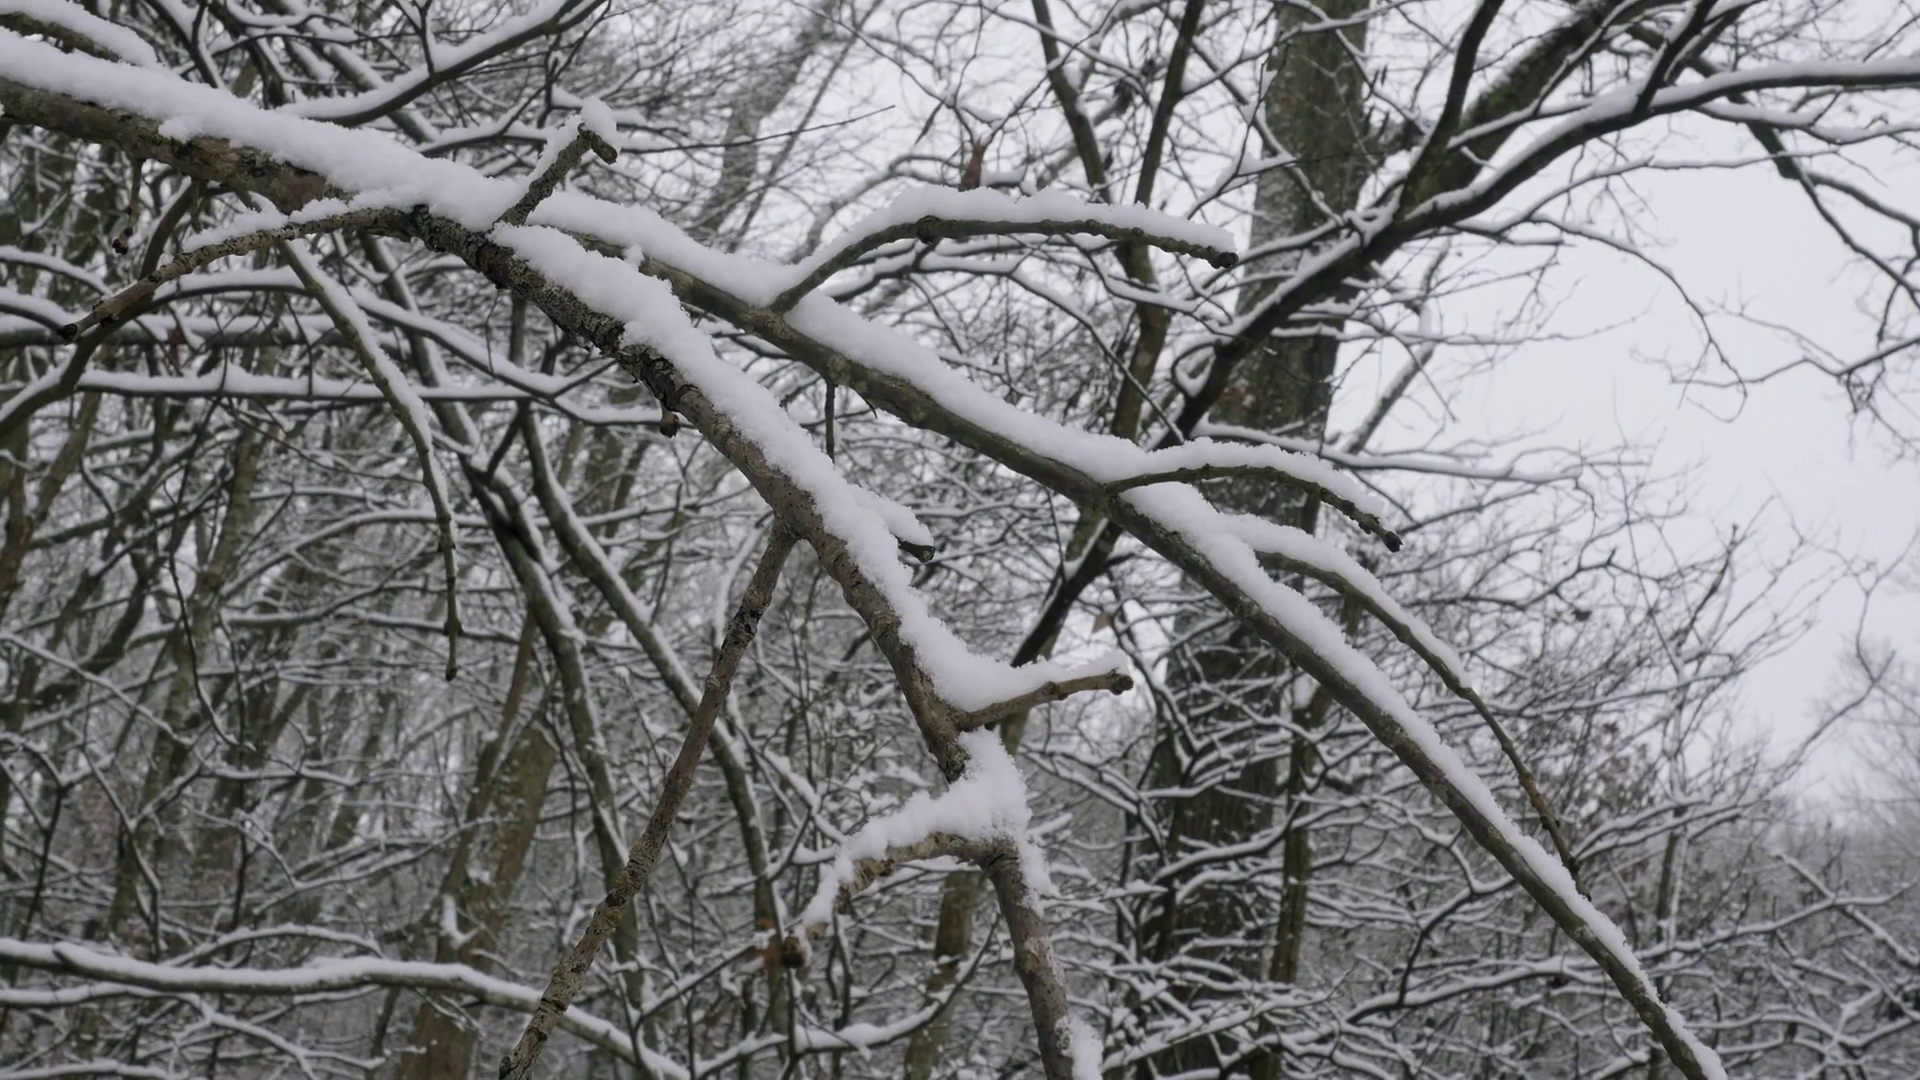 A recent winter snowfall blankets bare tree branches in 4k. The ...